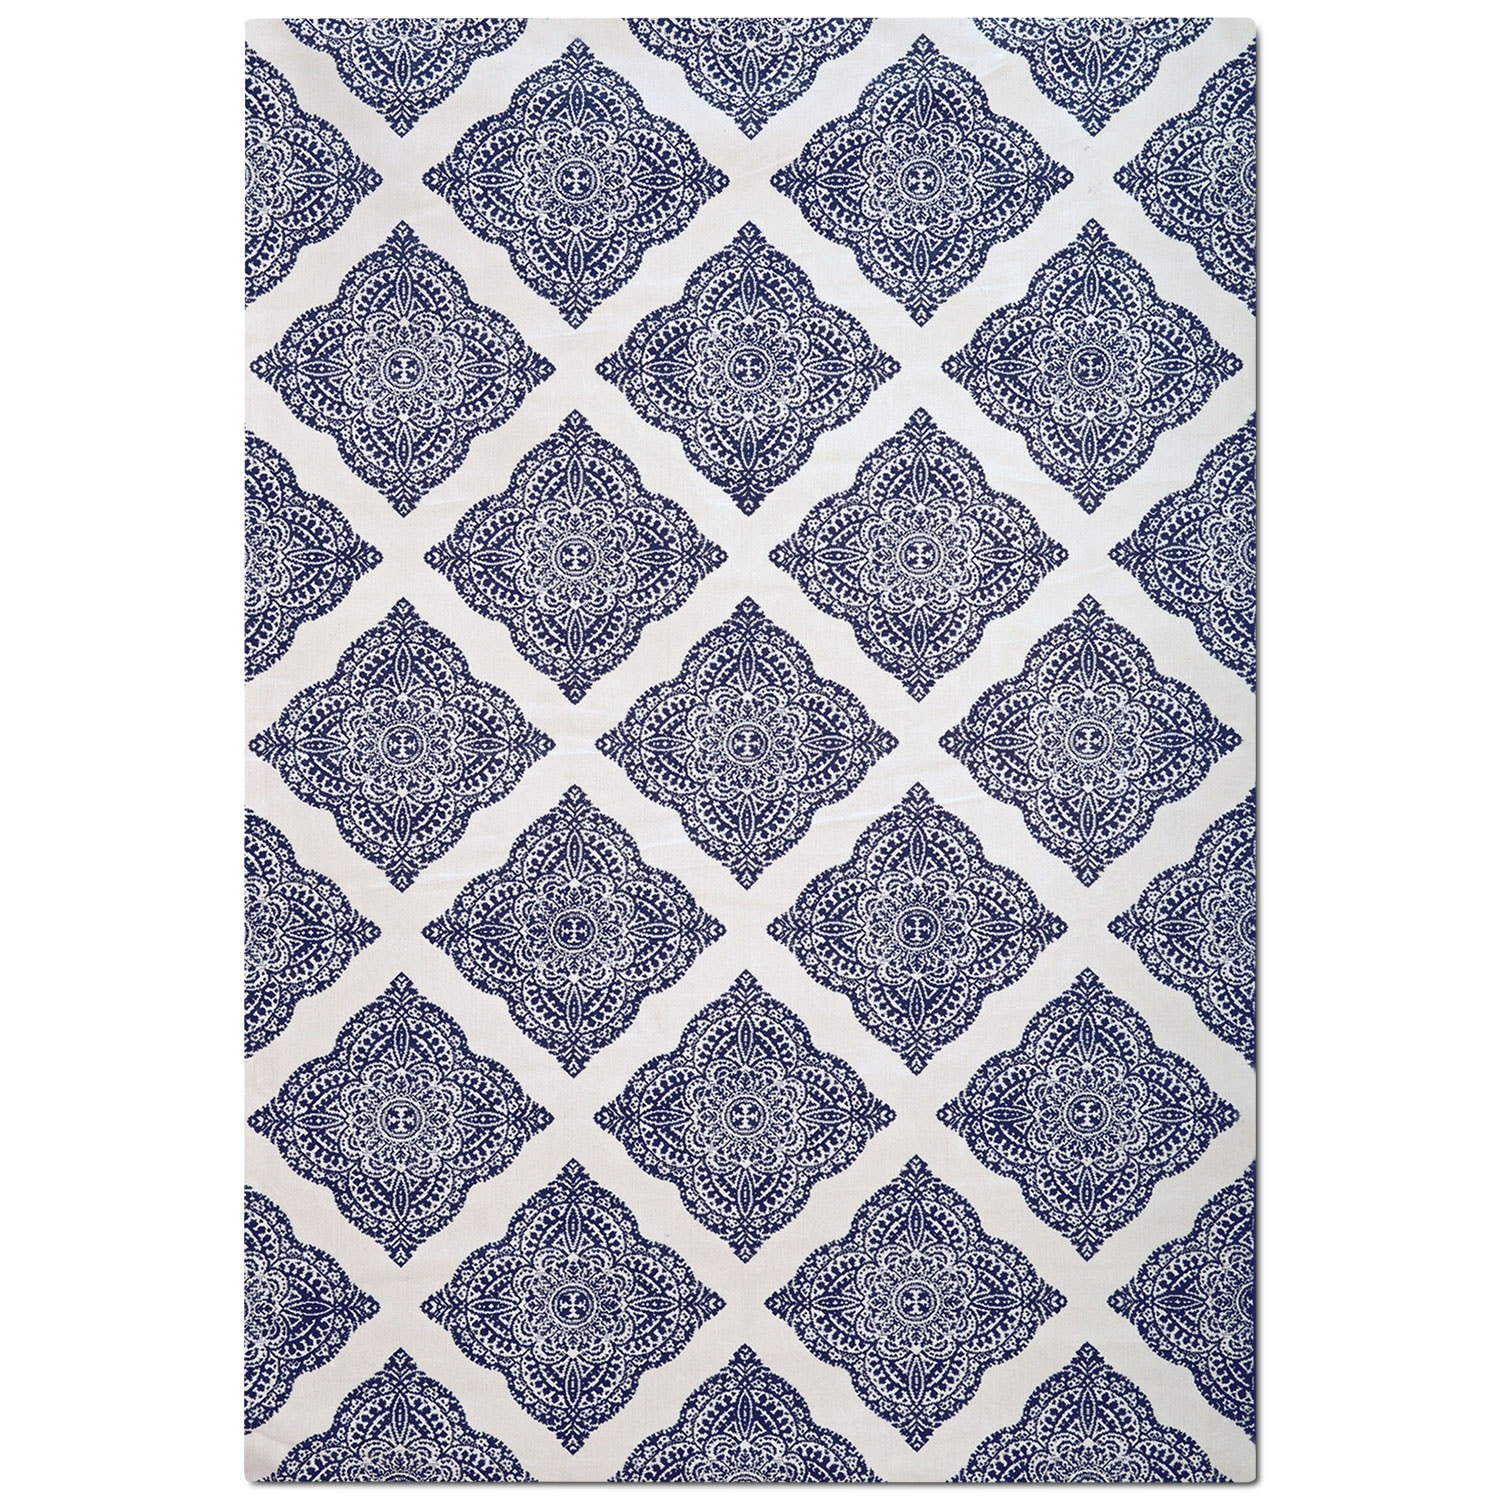 Rugs - Sonoma 5' x 8' Area Rug - Navy and White Country